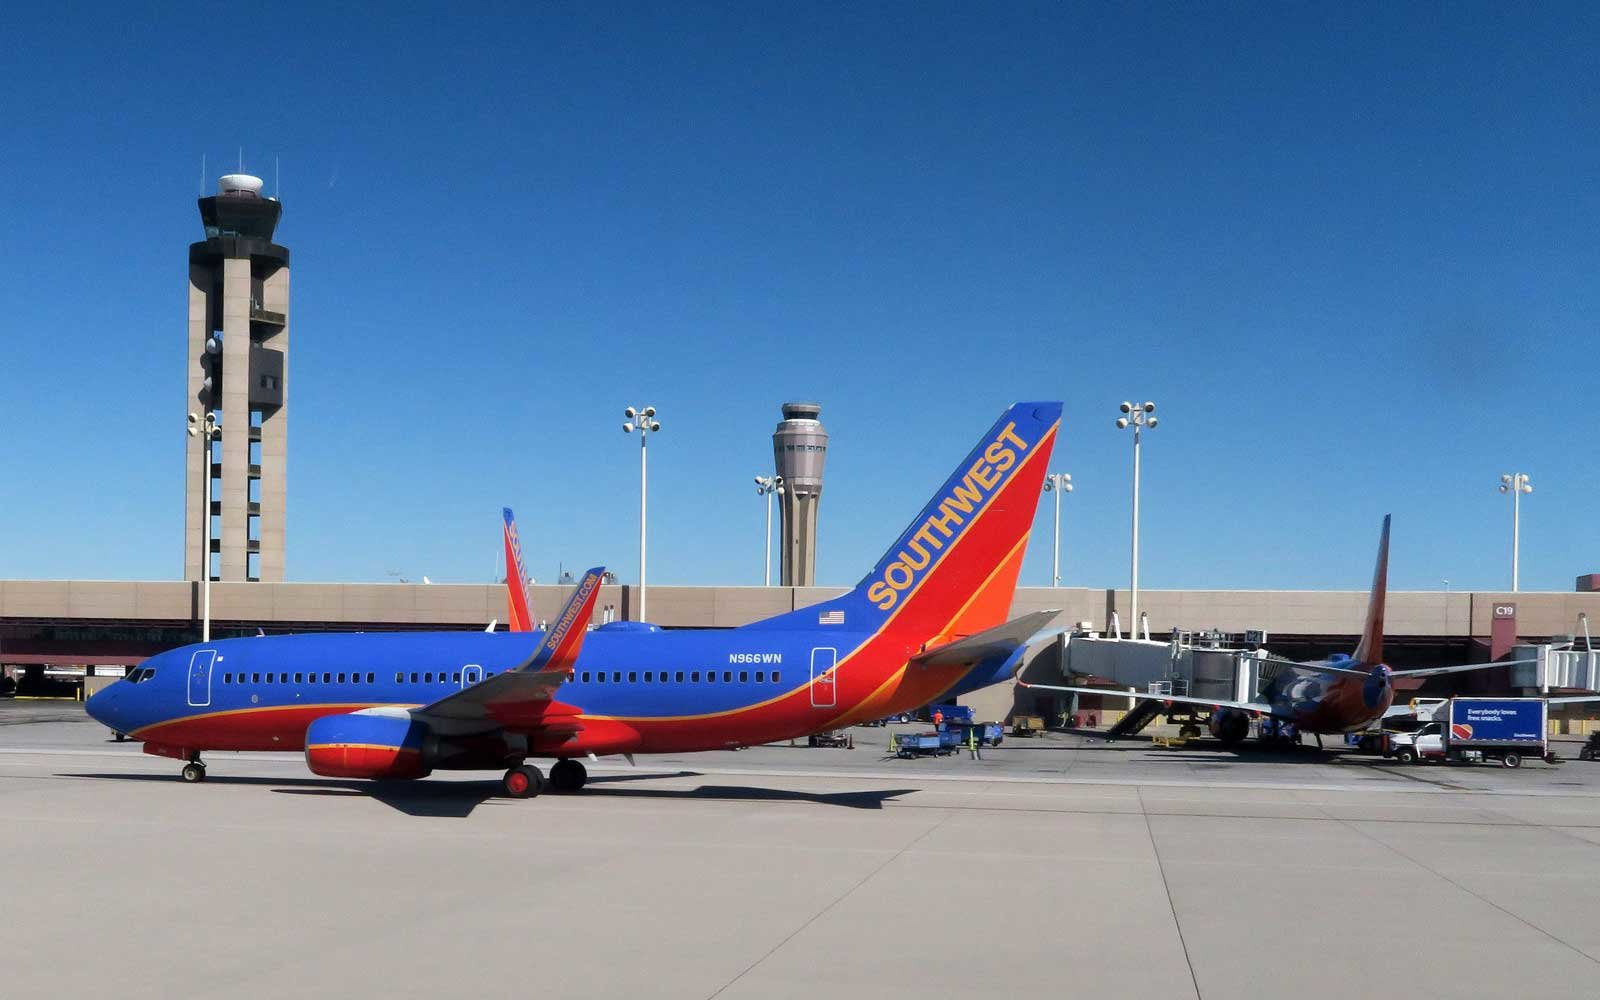 Southwest Airlines Loyalty Program